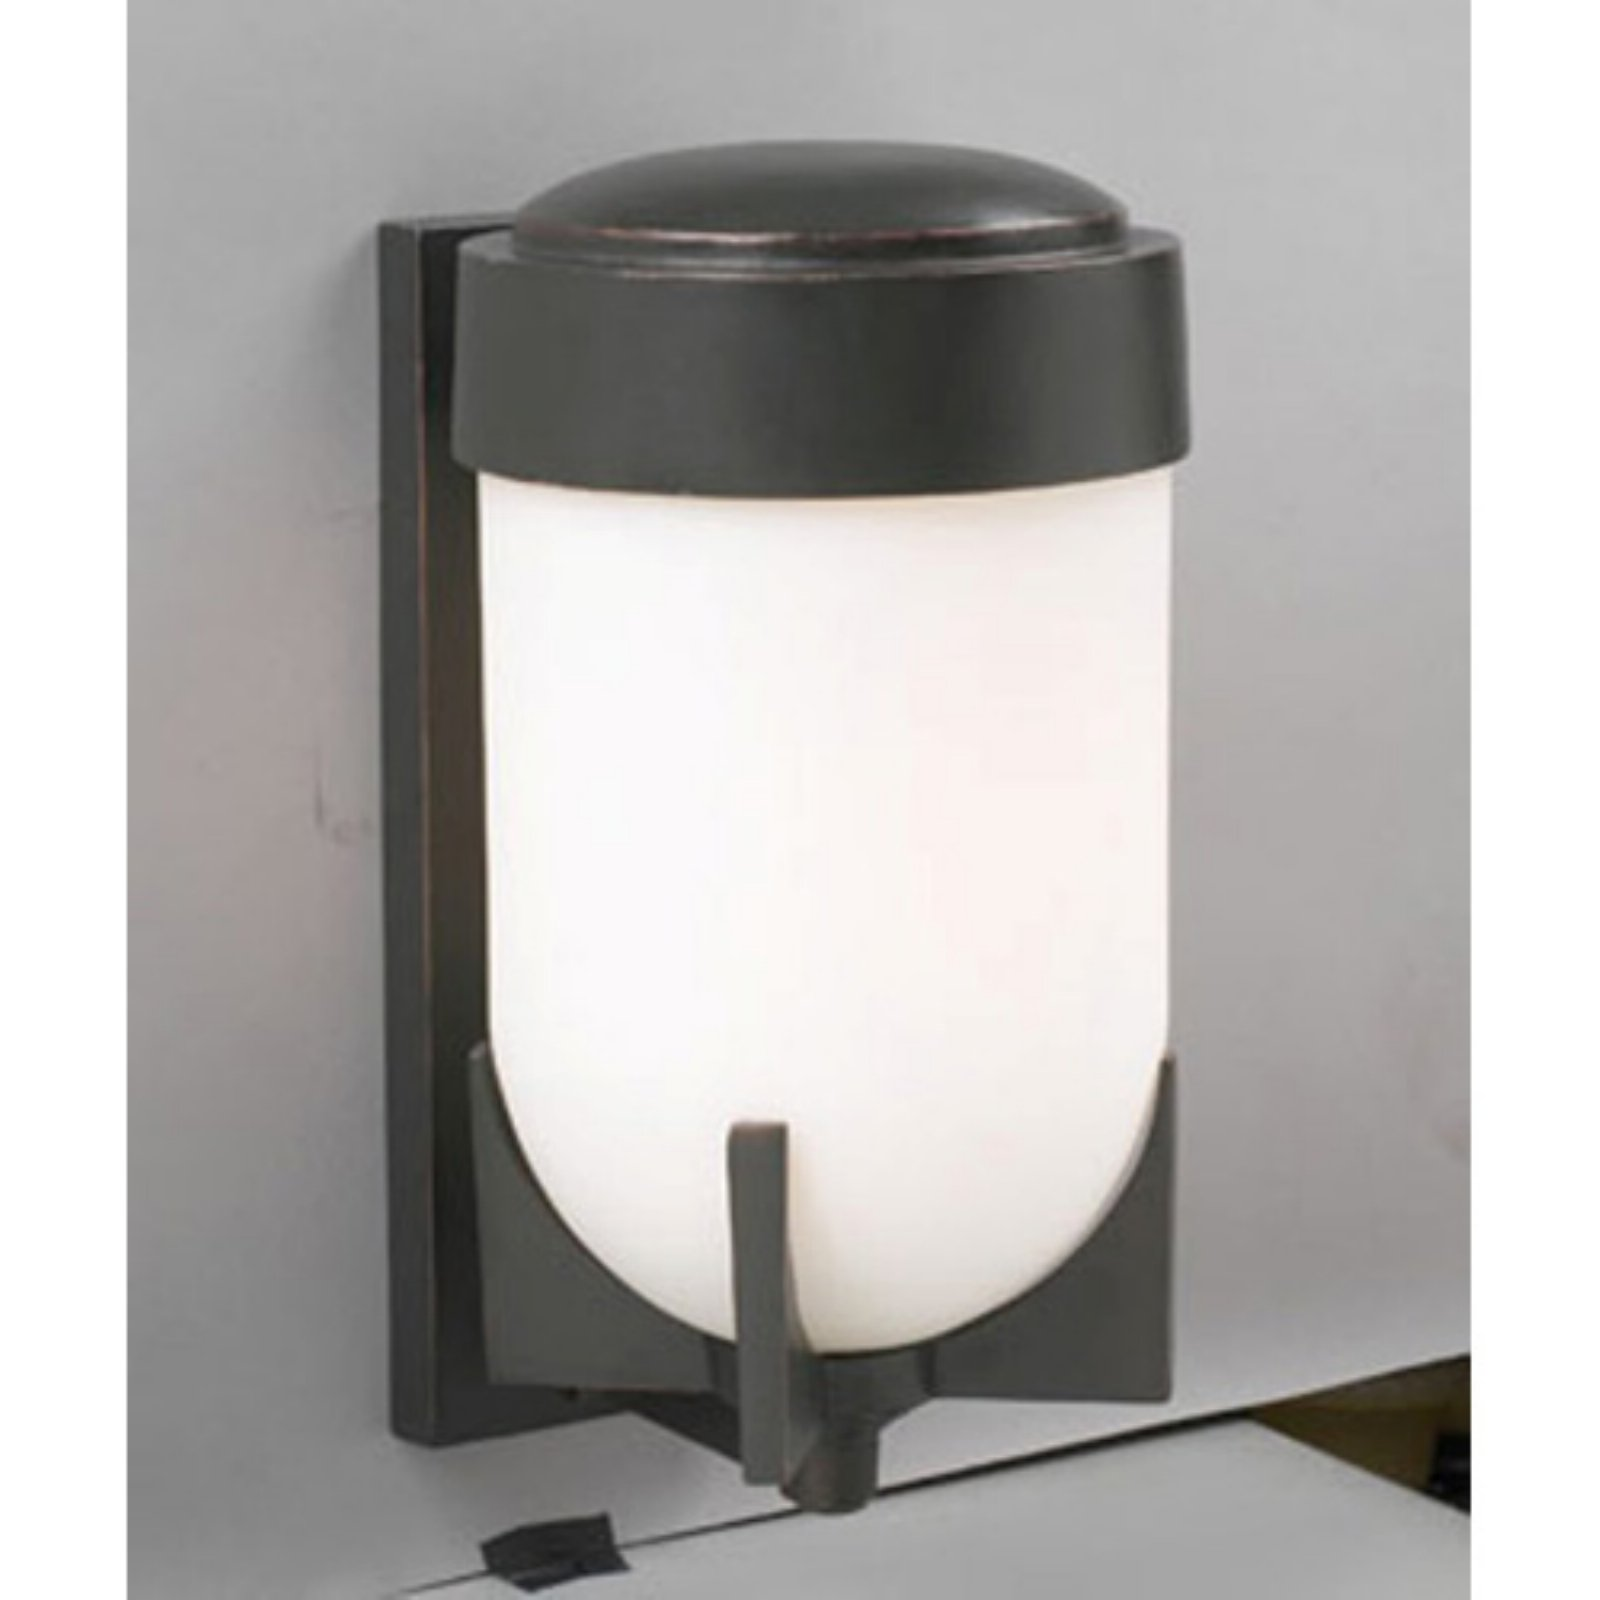 PLC Lighting Firenzi 31758 ORB Outdoor Wall Light